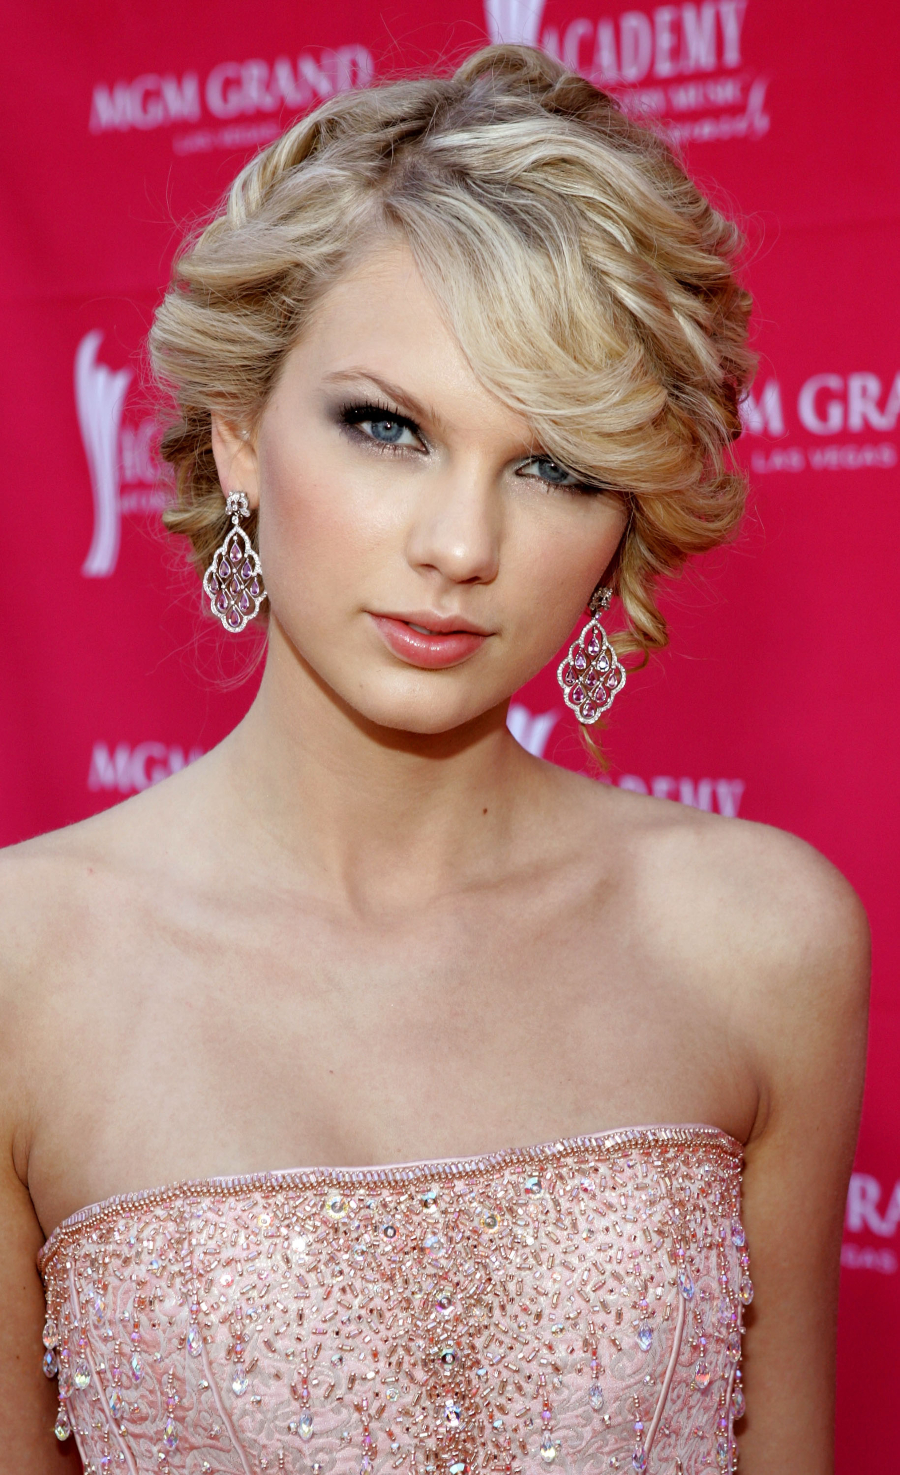 42nd Annual Academy Of Country Music Awards - Arrivals LAS VEGAS - MAY 15: Singer Taylor Swift arrives at the 42nd Annual Academy Of Country Music Awards held at the MGM Grand Garden Arena on May 15, 2007 in Las Vegas, Nevada. (Photo by Frazer Harrison/ACMA/Getty Images for ACMA)